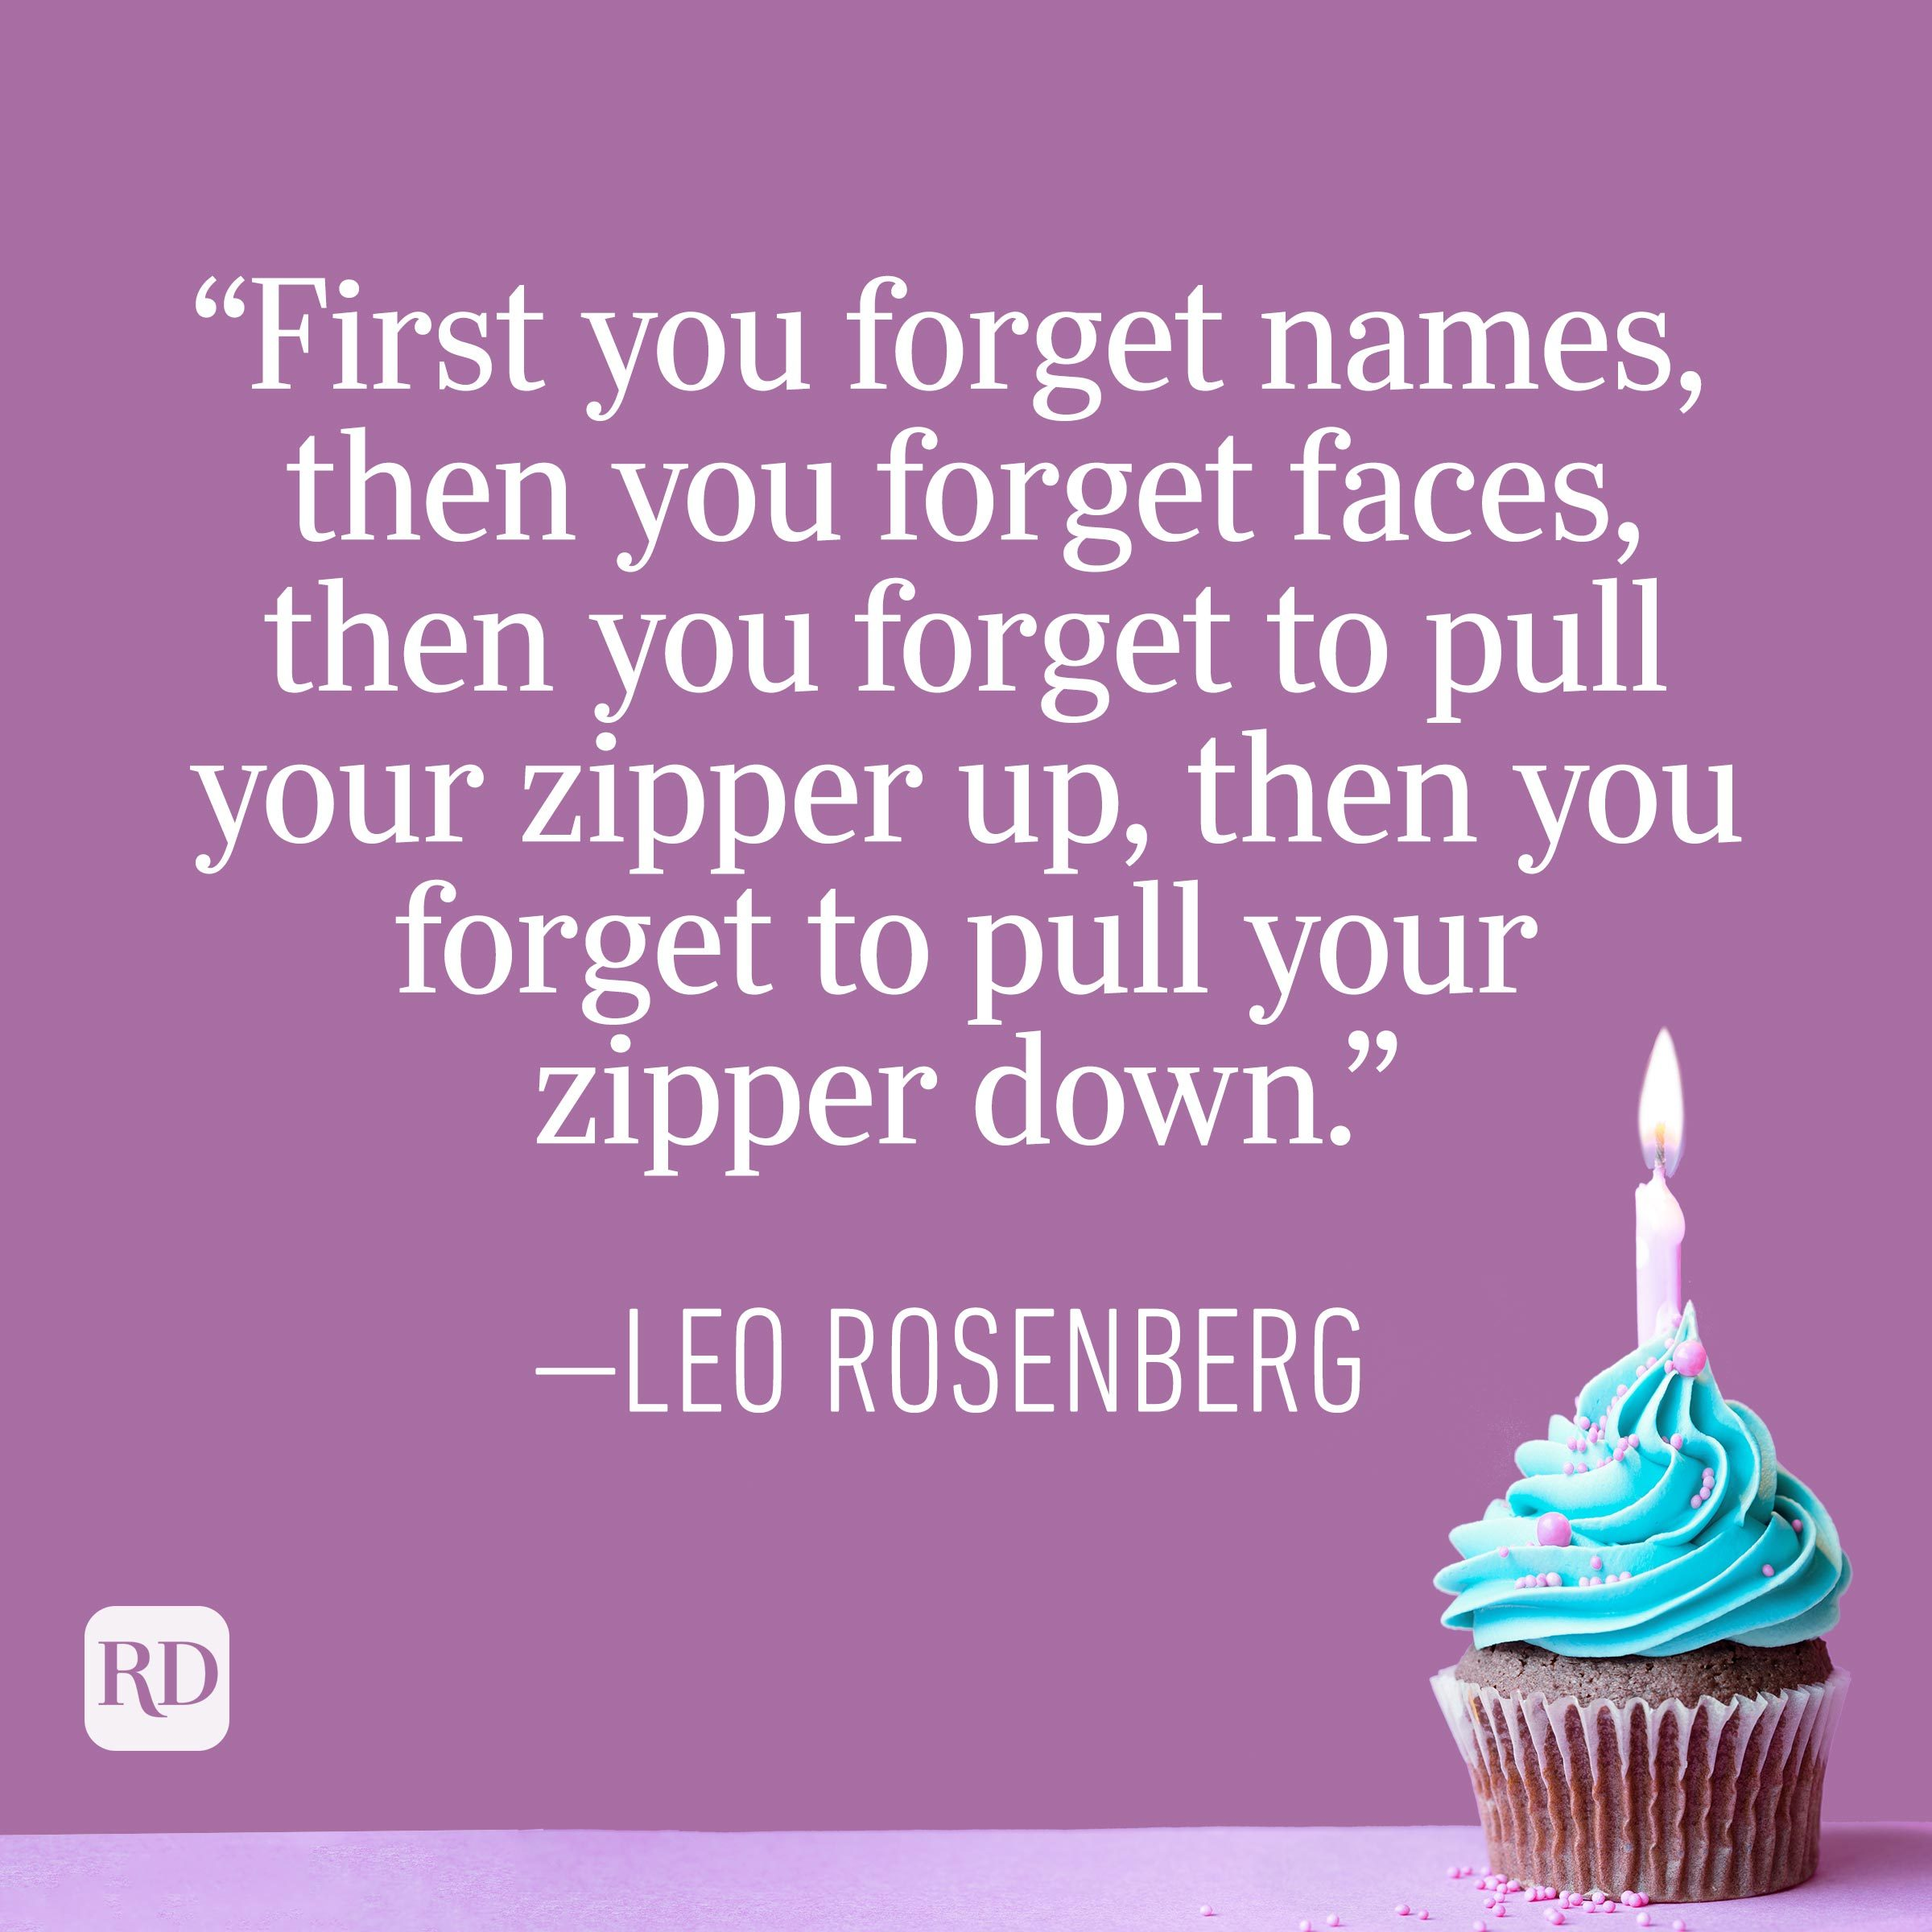 """""""First you forget names, then you forget faces, then you forget to pull your zipper up, then you forget to pull your zipper down."""" —Leo Rosenberg"""